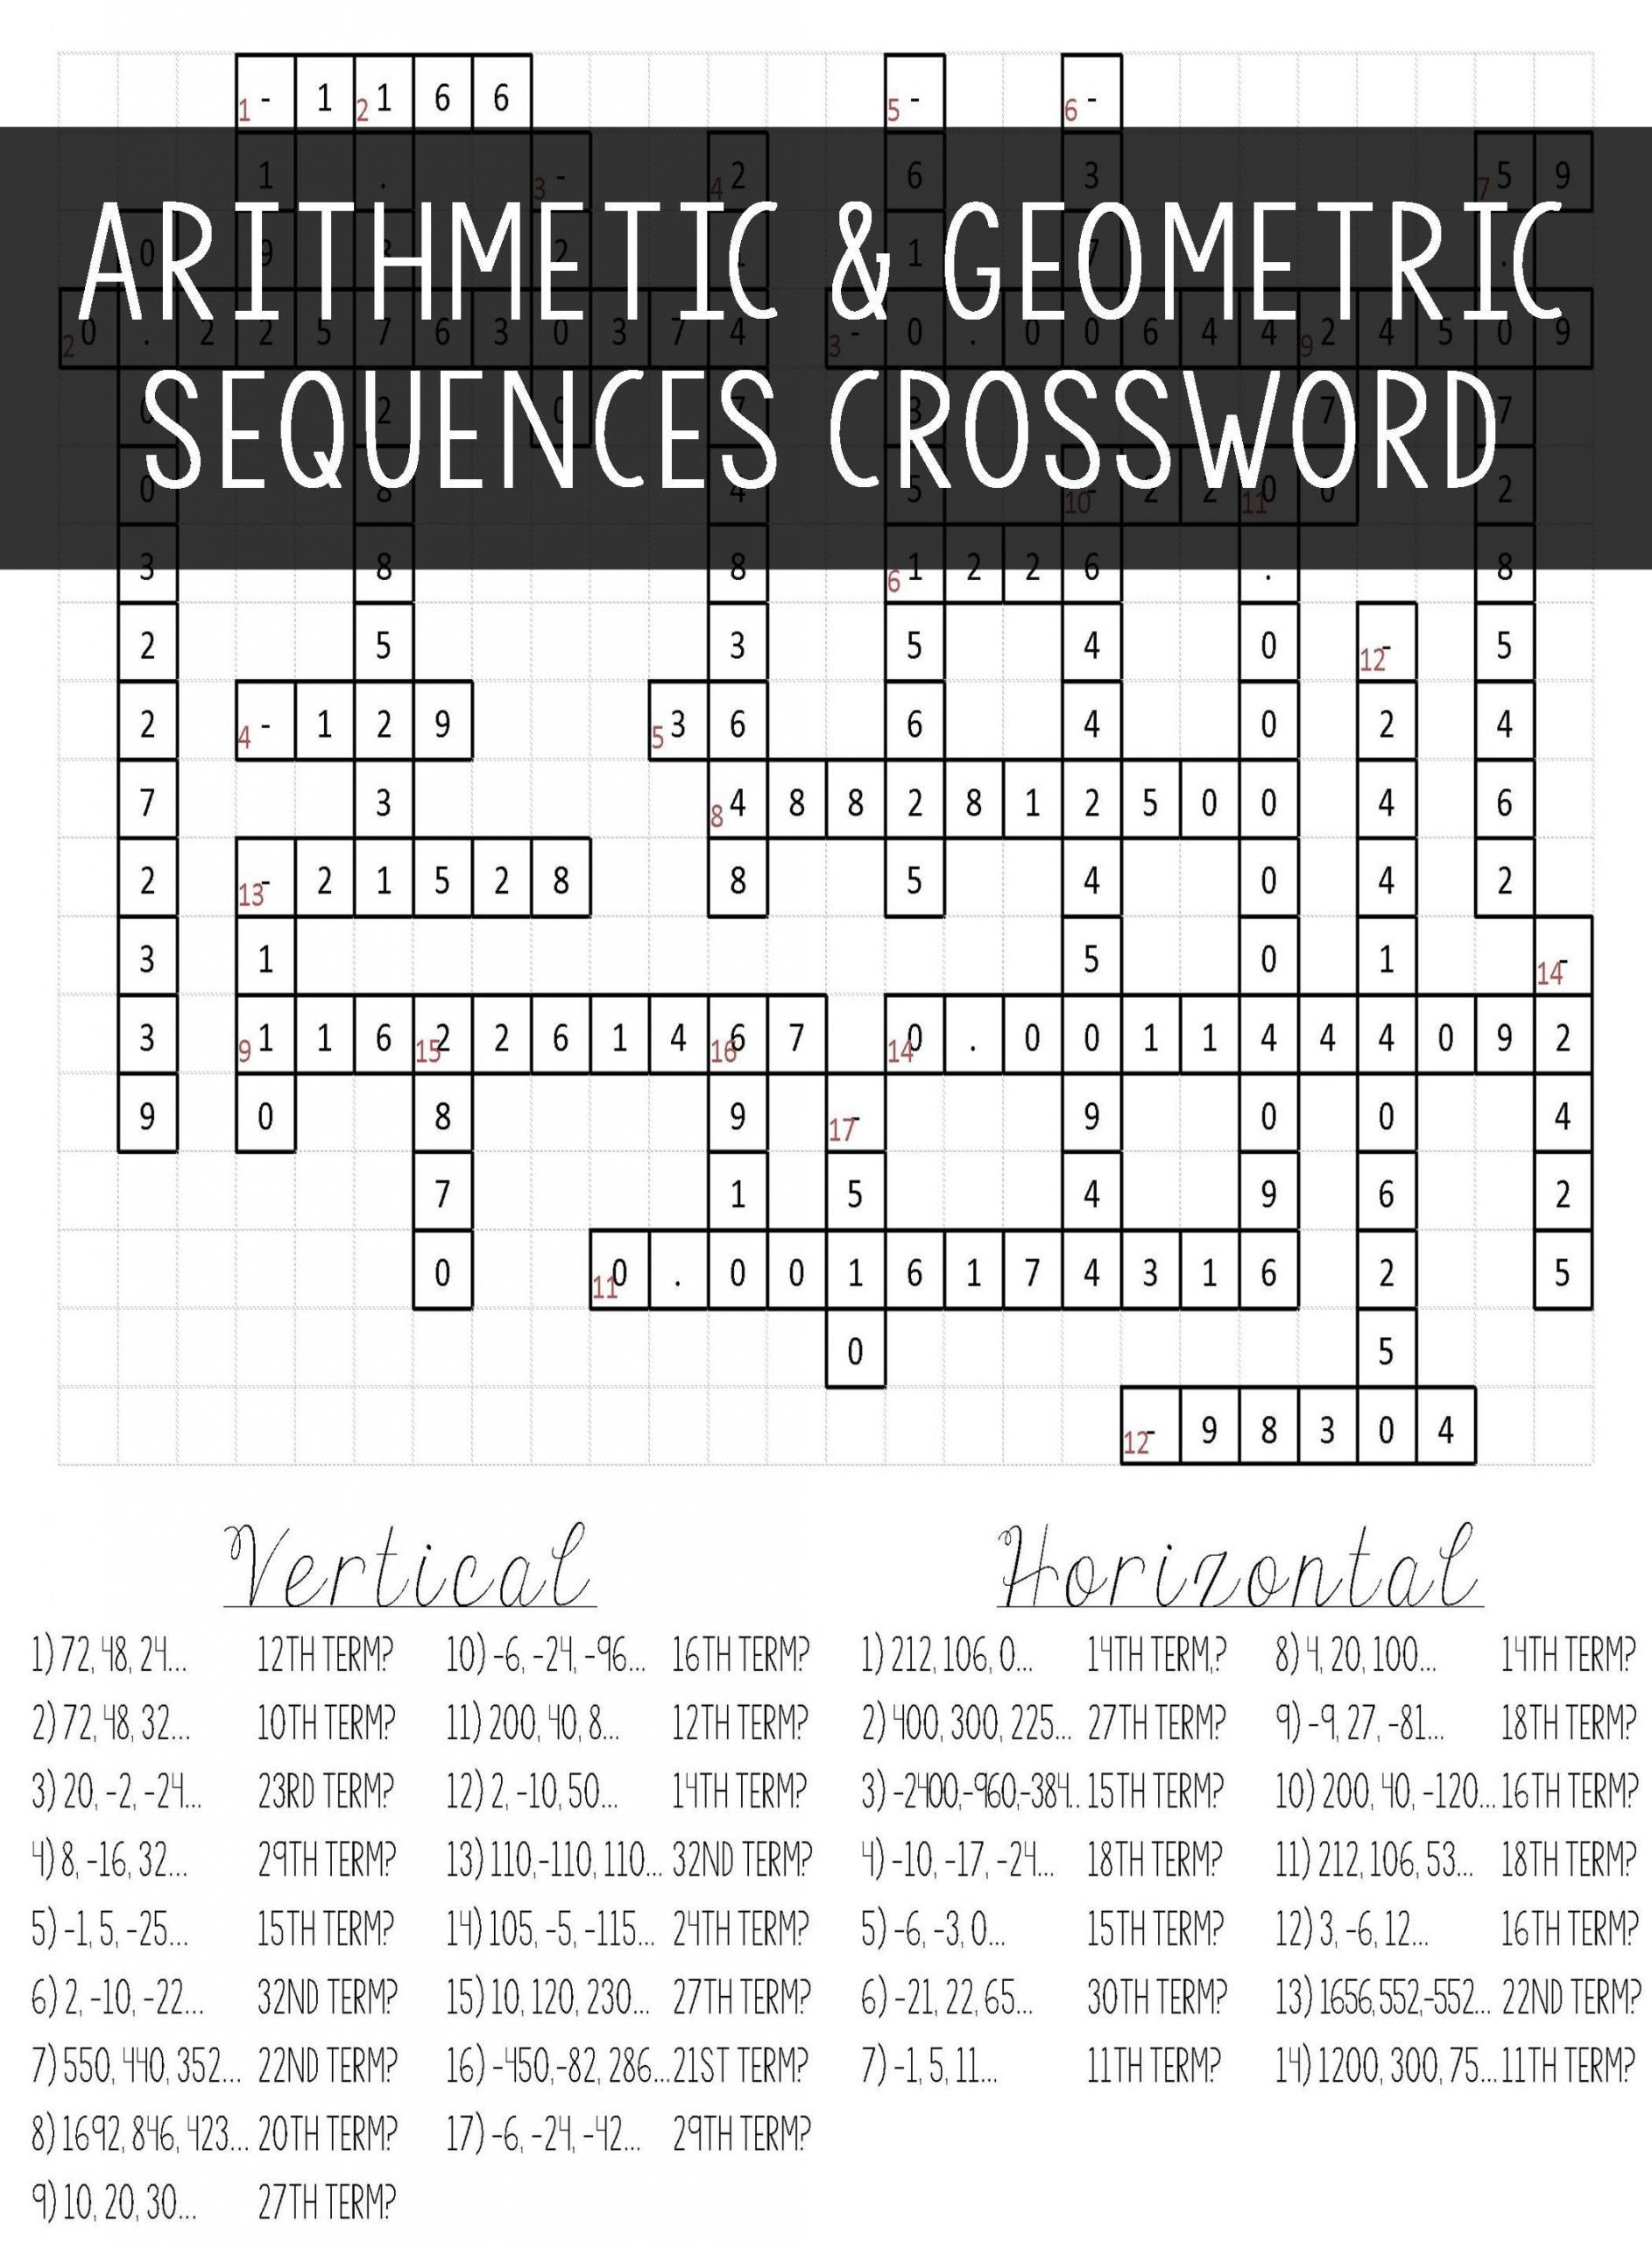 Arithmetic And Geometric Sequences Worksheet Arithmetic Geometric Sequences Crossword Puzzle Activity In 2020 Arithmetic Sequences Geometric Sequences Arithmetic